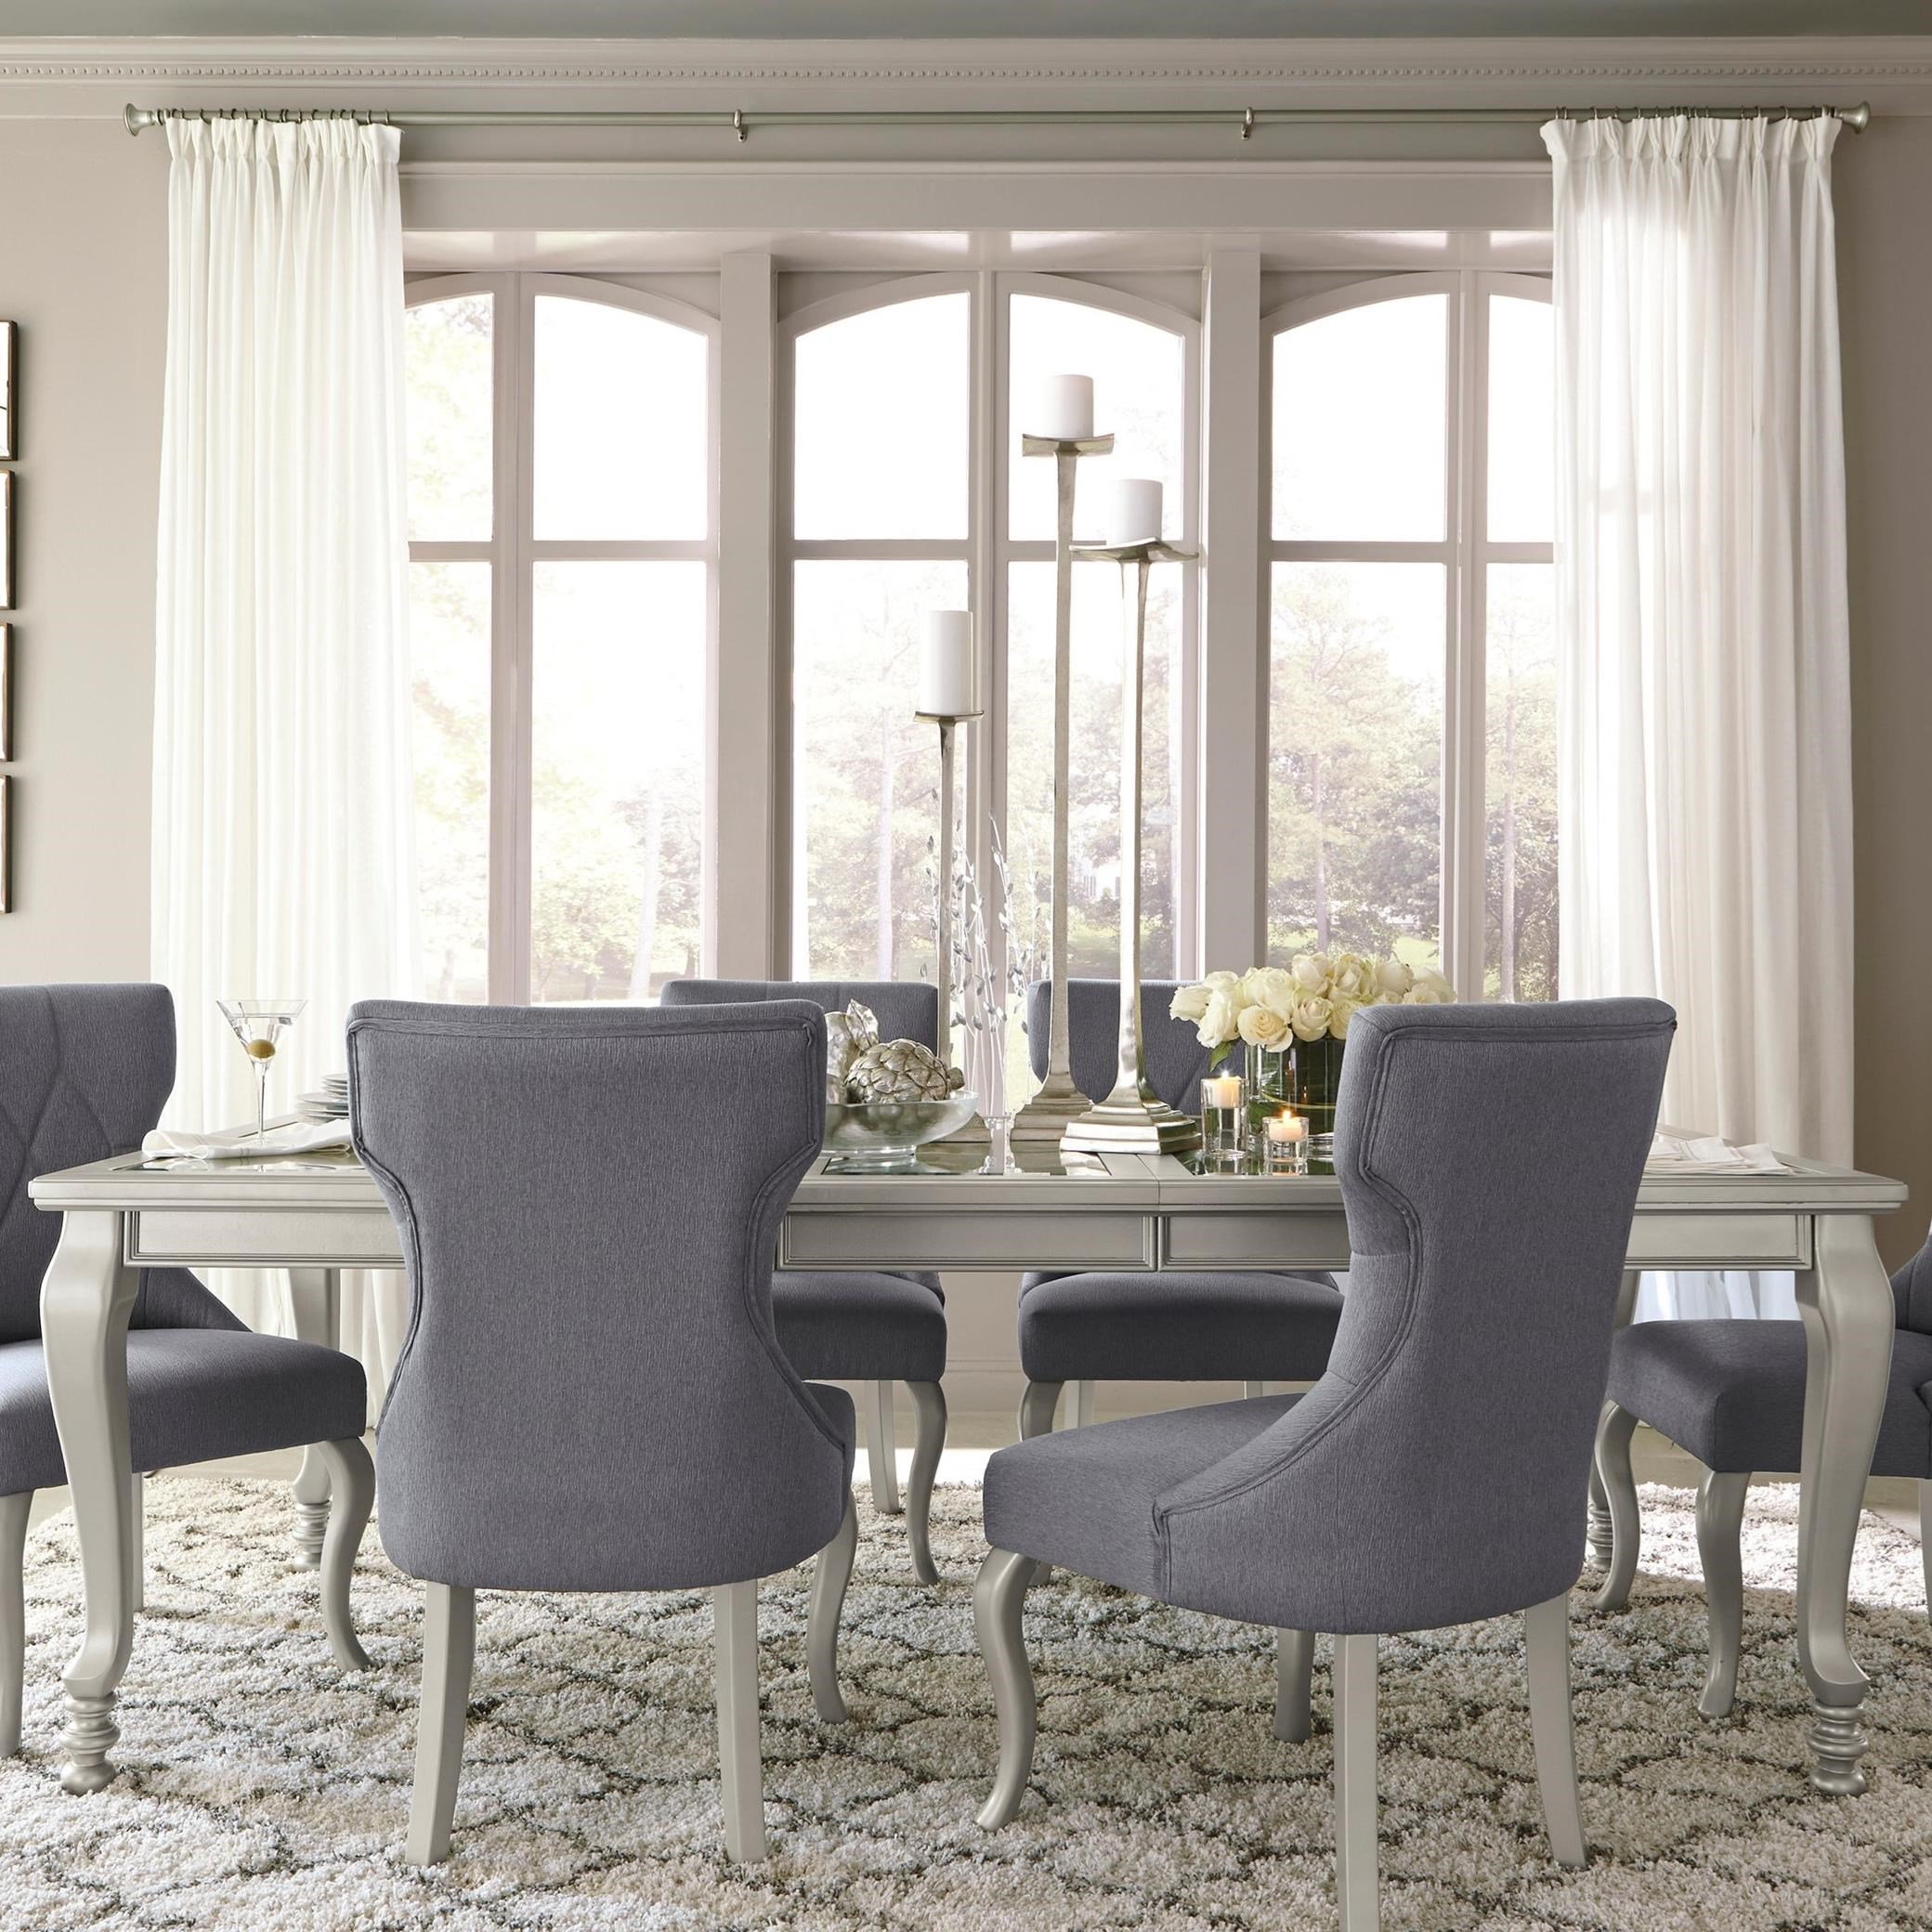 Coralayne 5-Piece Rectangular Dining Room Table Set by Signature Design by Ashley at Northeast Factory Direct